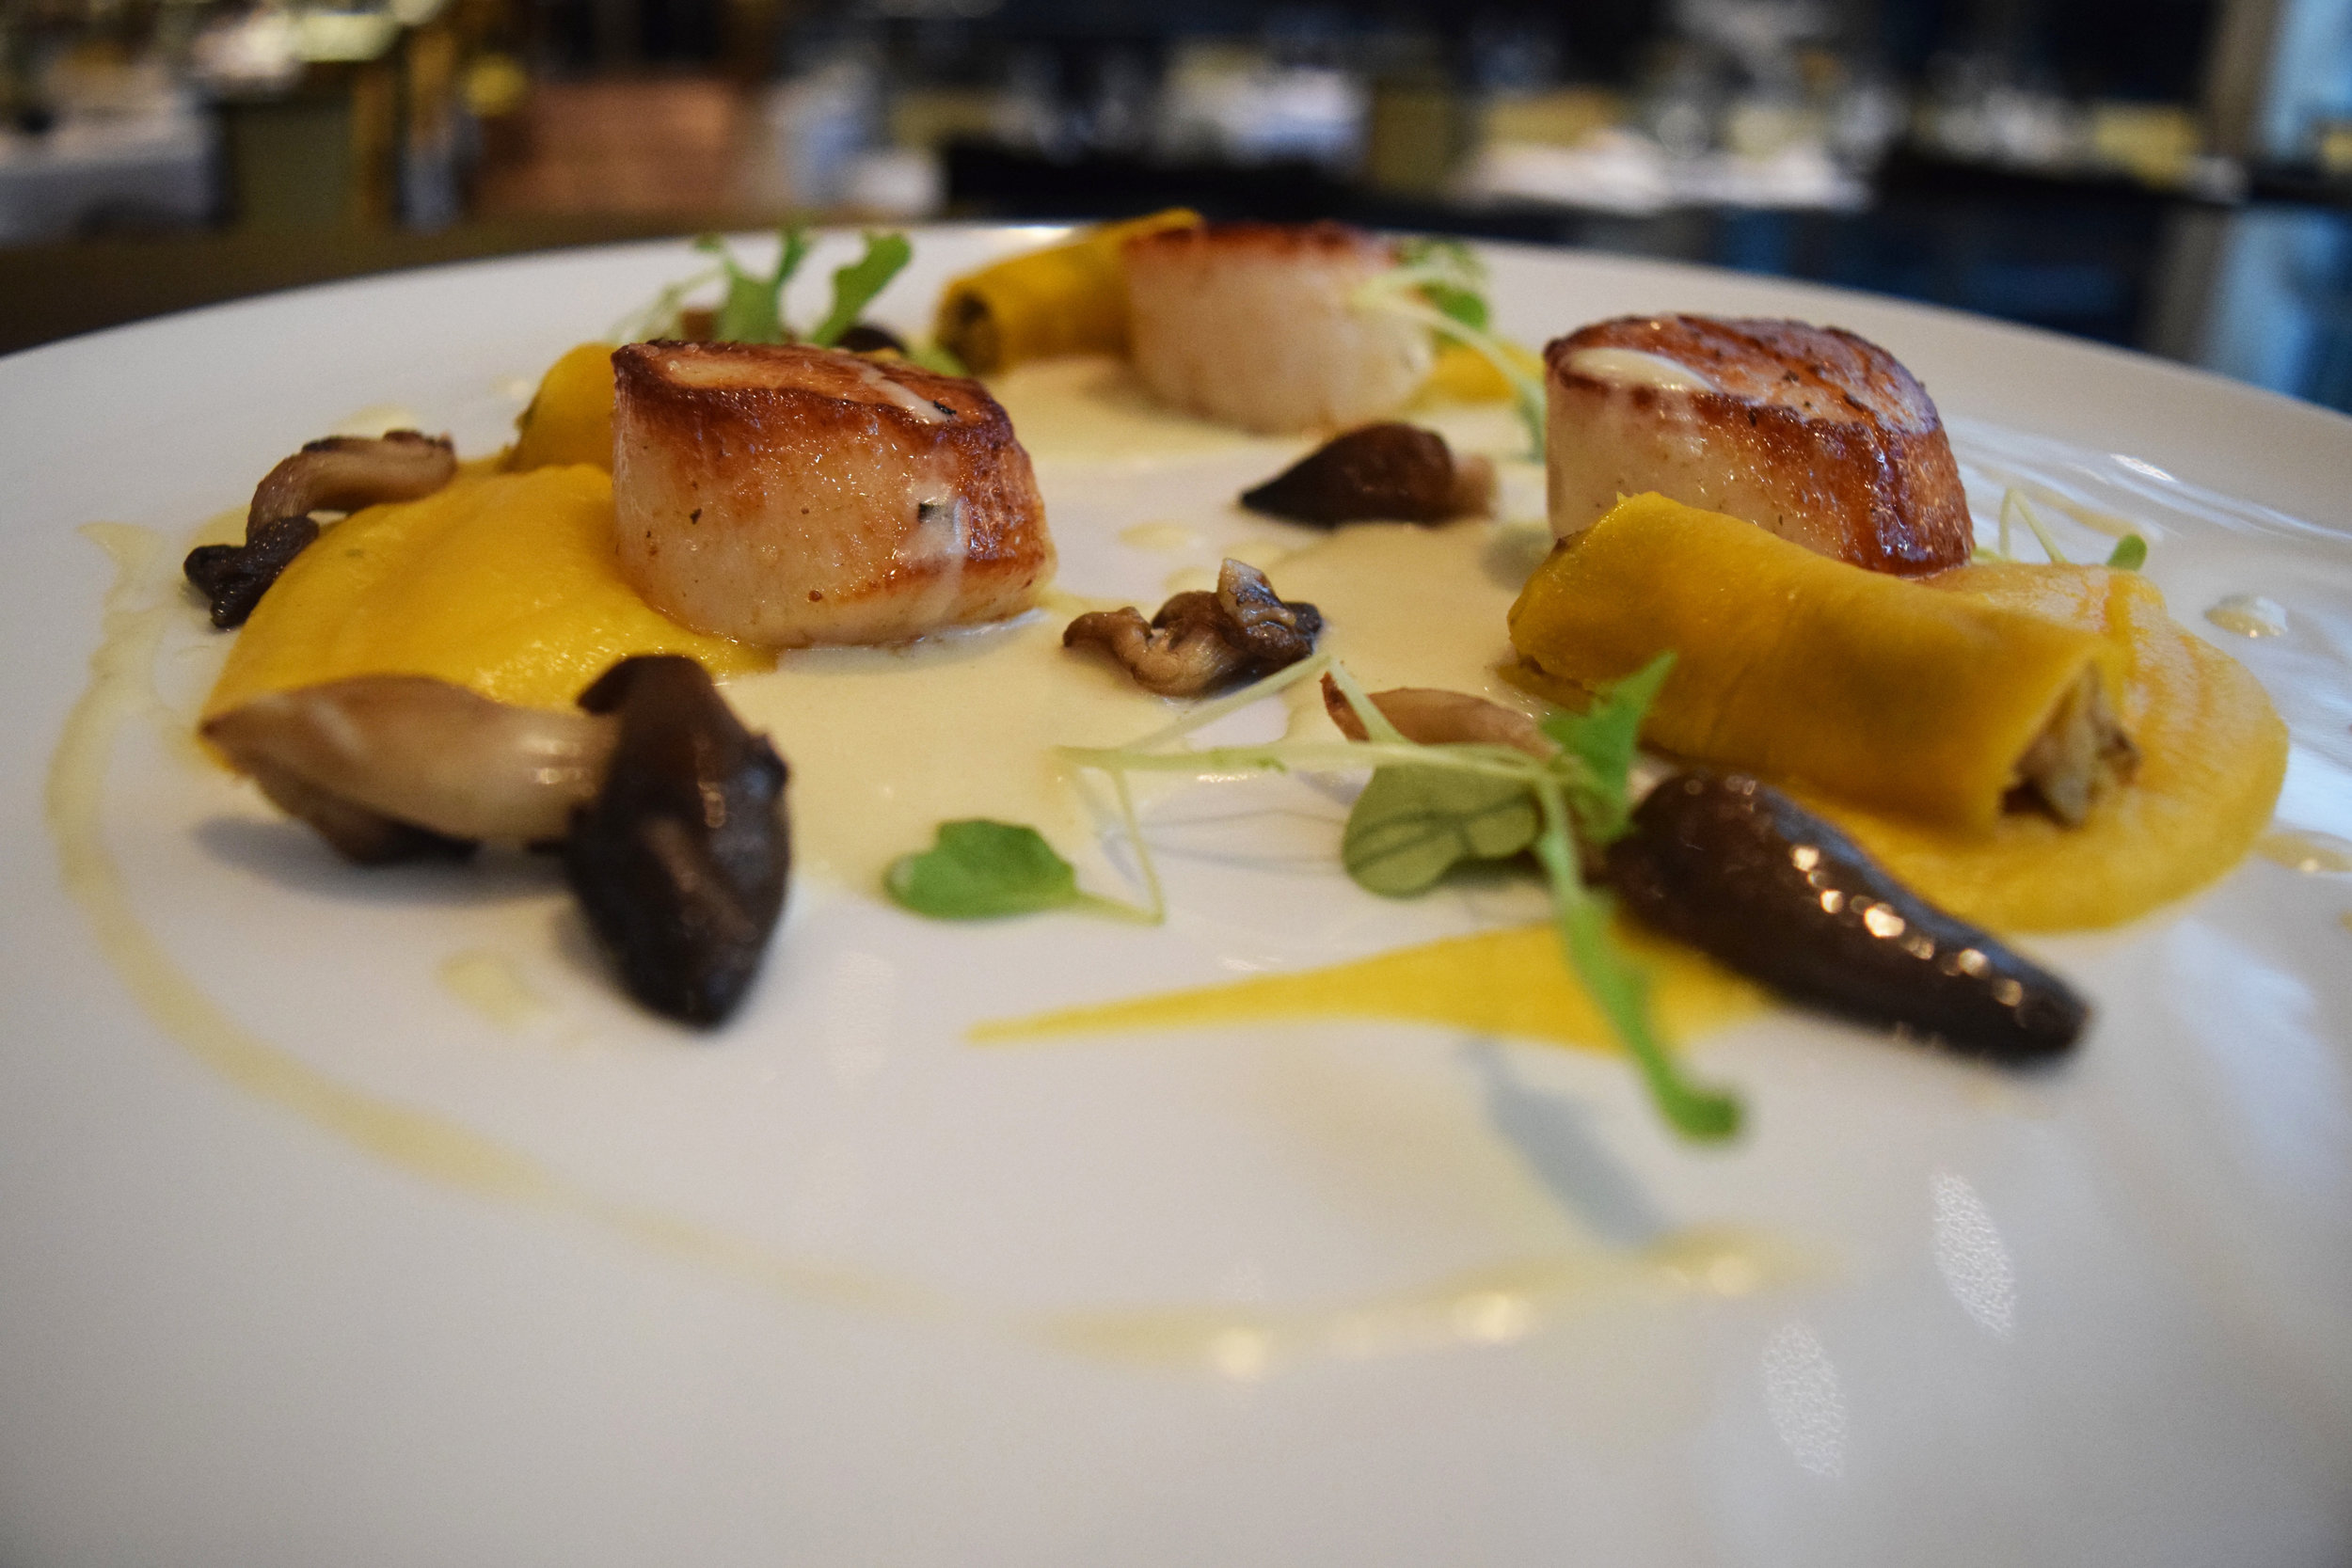 Saint-Jacques rôties - Seared scallops_3.jpg